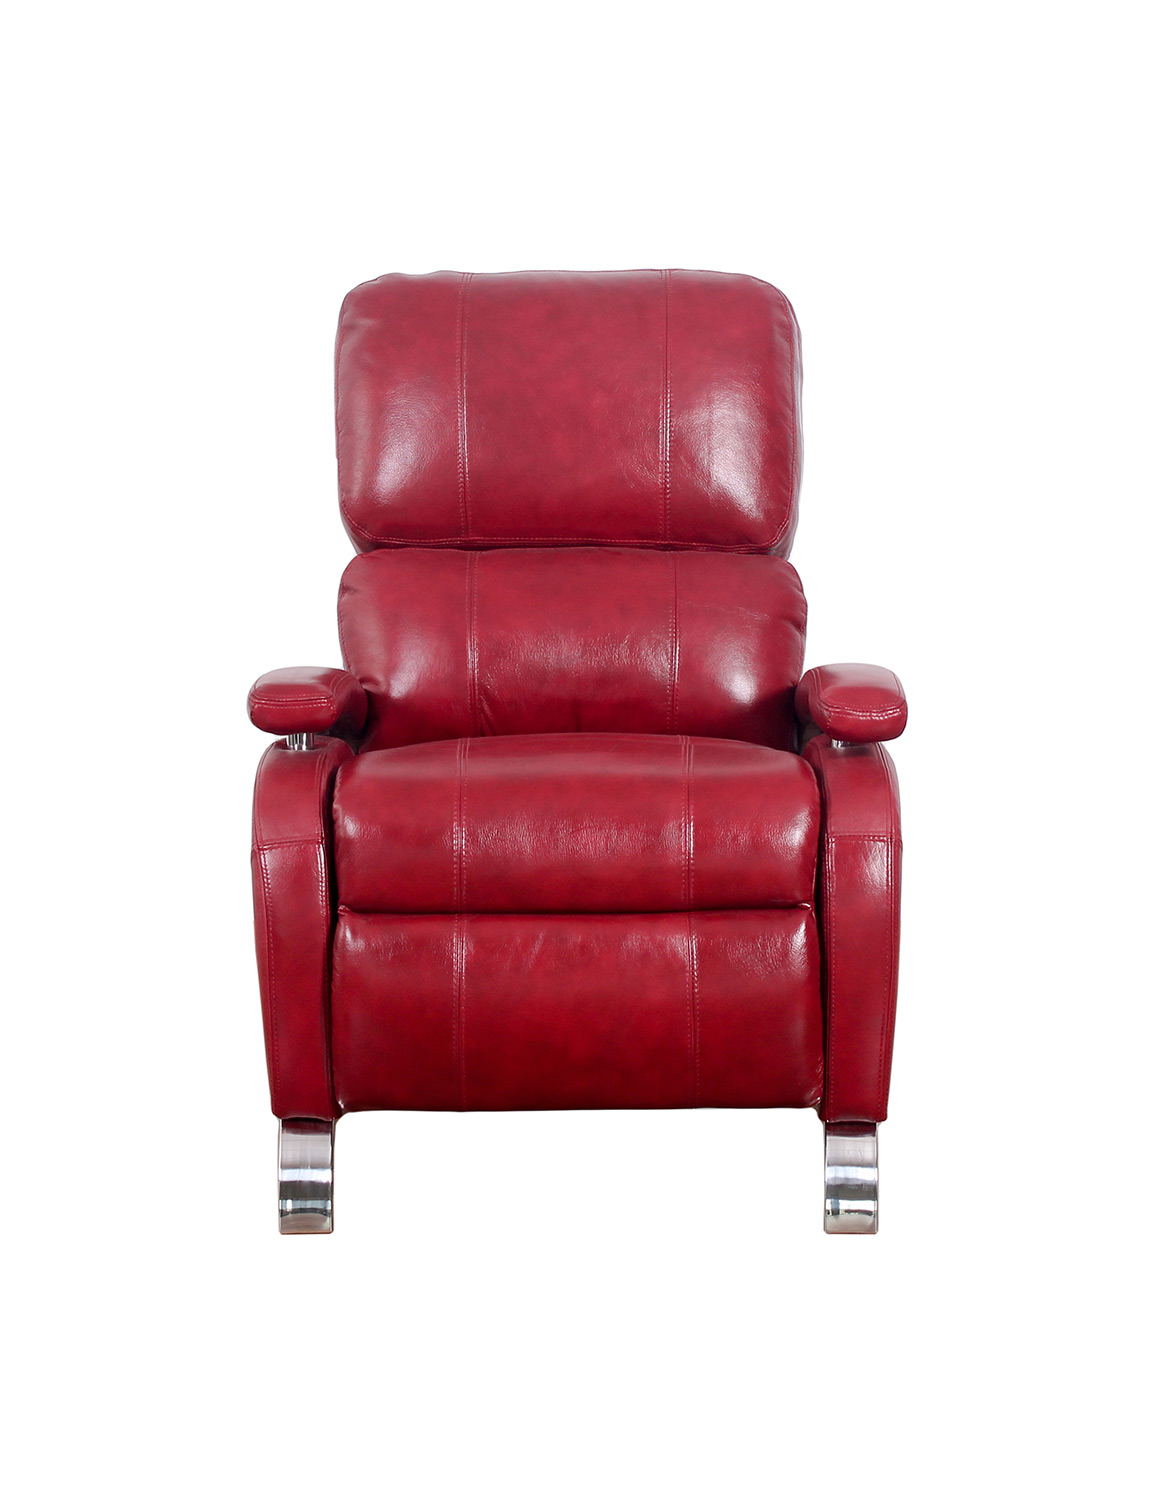 Barcalounger Oracle Recliner Chair - Stargo Red/Leather Match